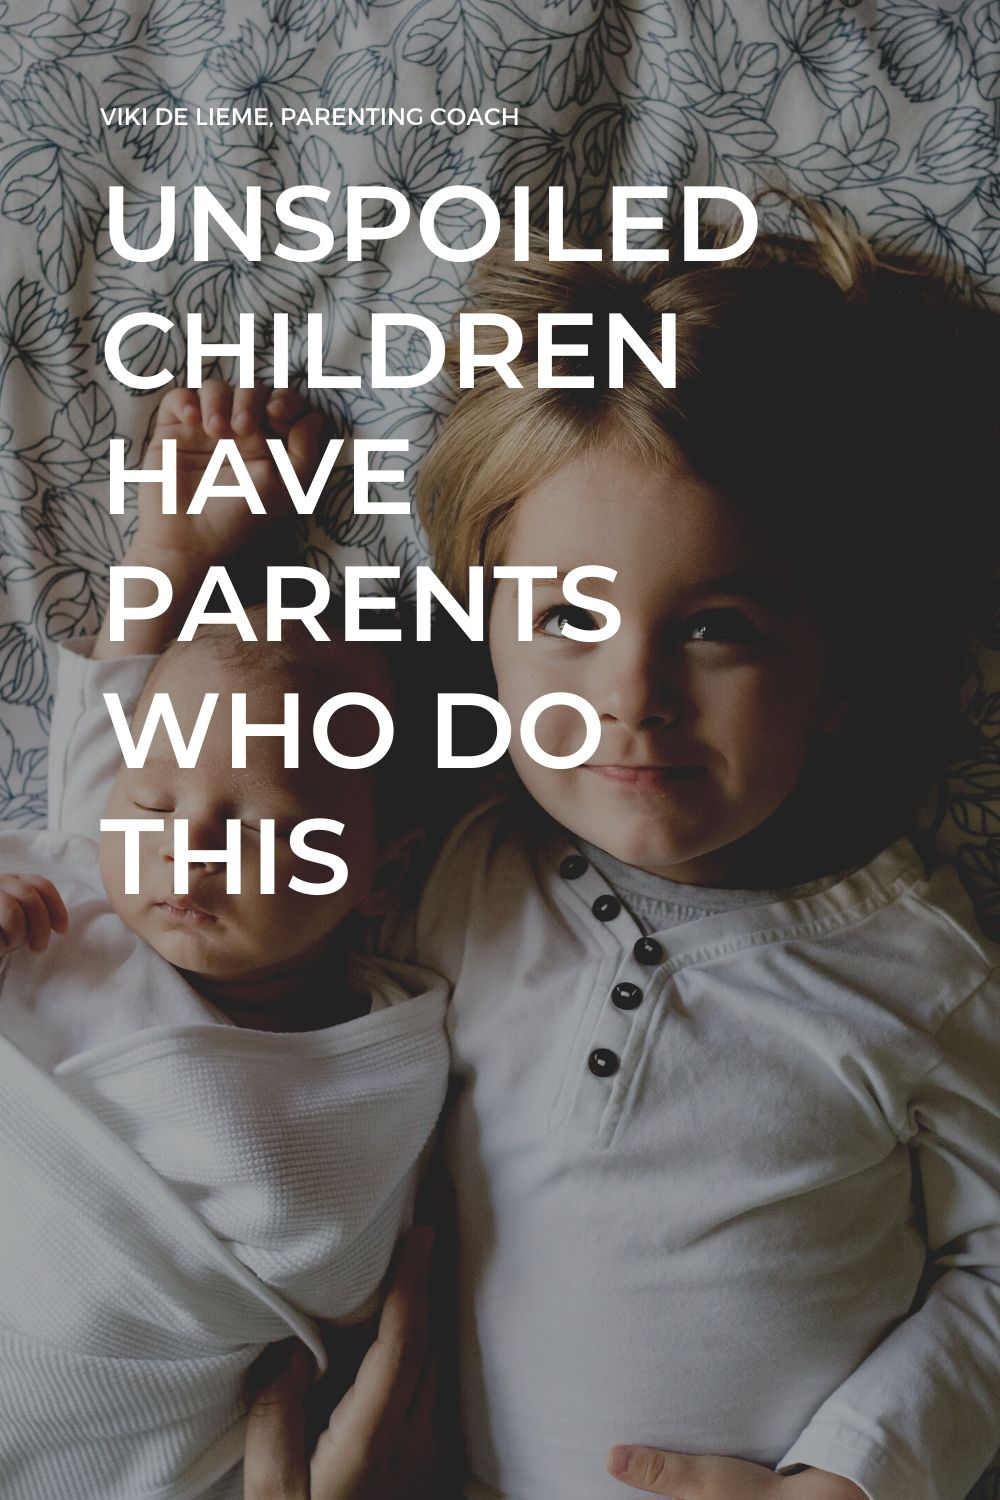 Not spoiling your child is easy - if you follow this simple and intuitive method #parenting #smartparents #peacefulparenting #naturalparenting #parentingtips #motherhood #attachmentparenting #mindfulparenting #mindfulness